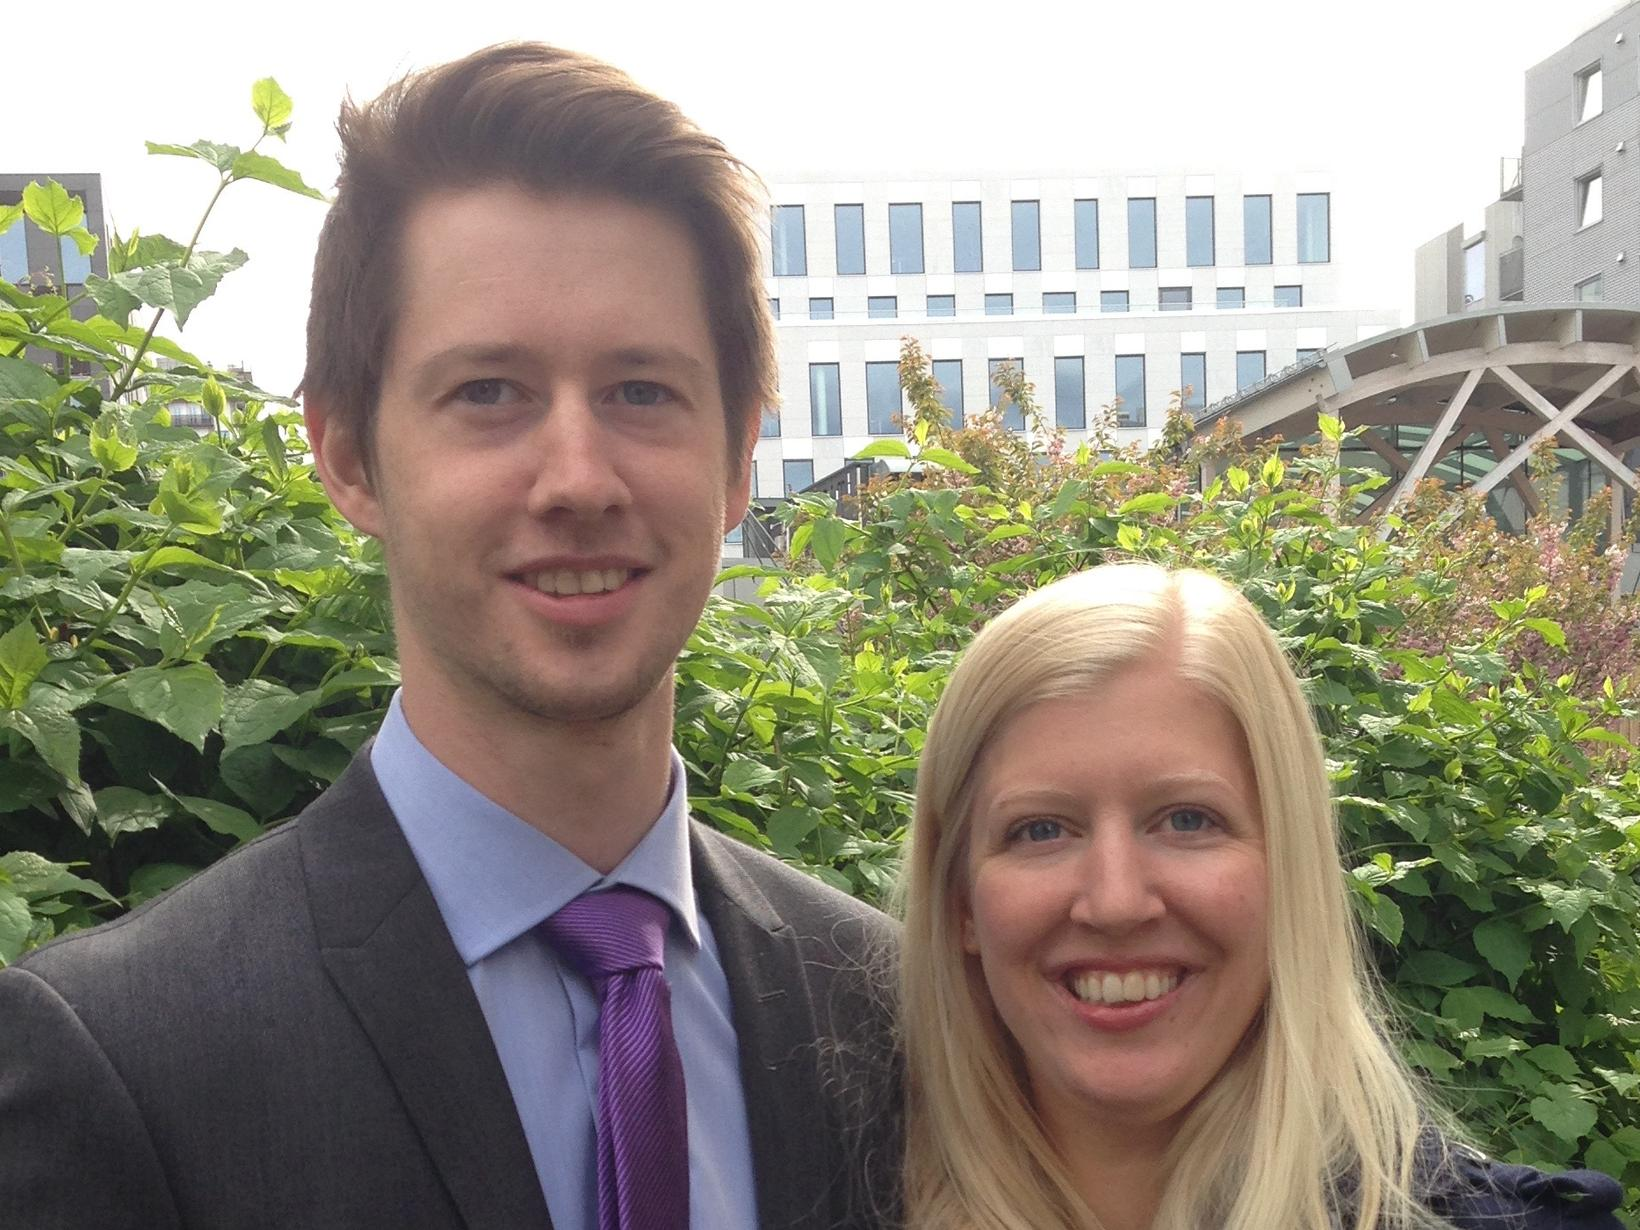 Marit & Callum from Oslo, Norway